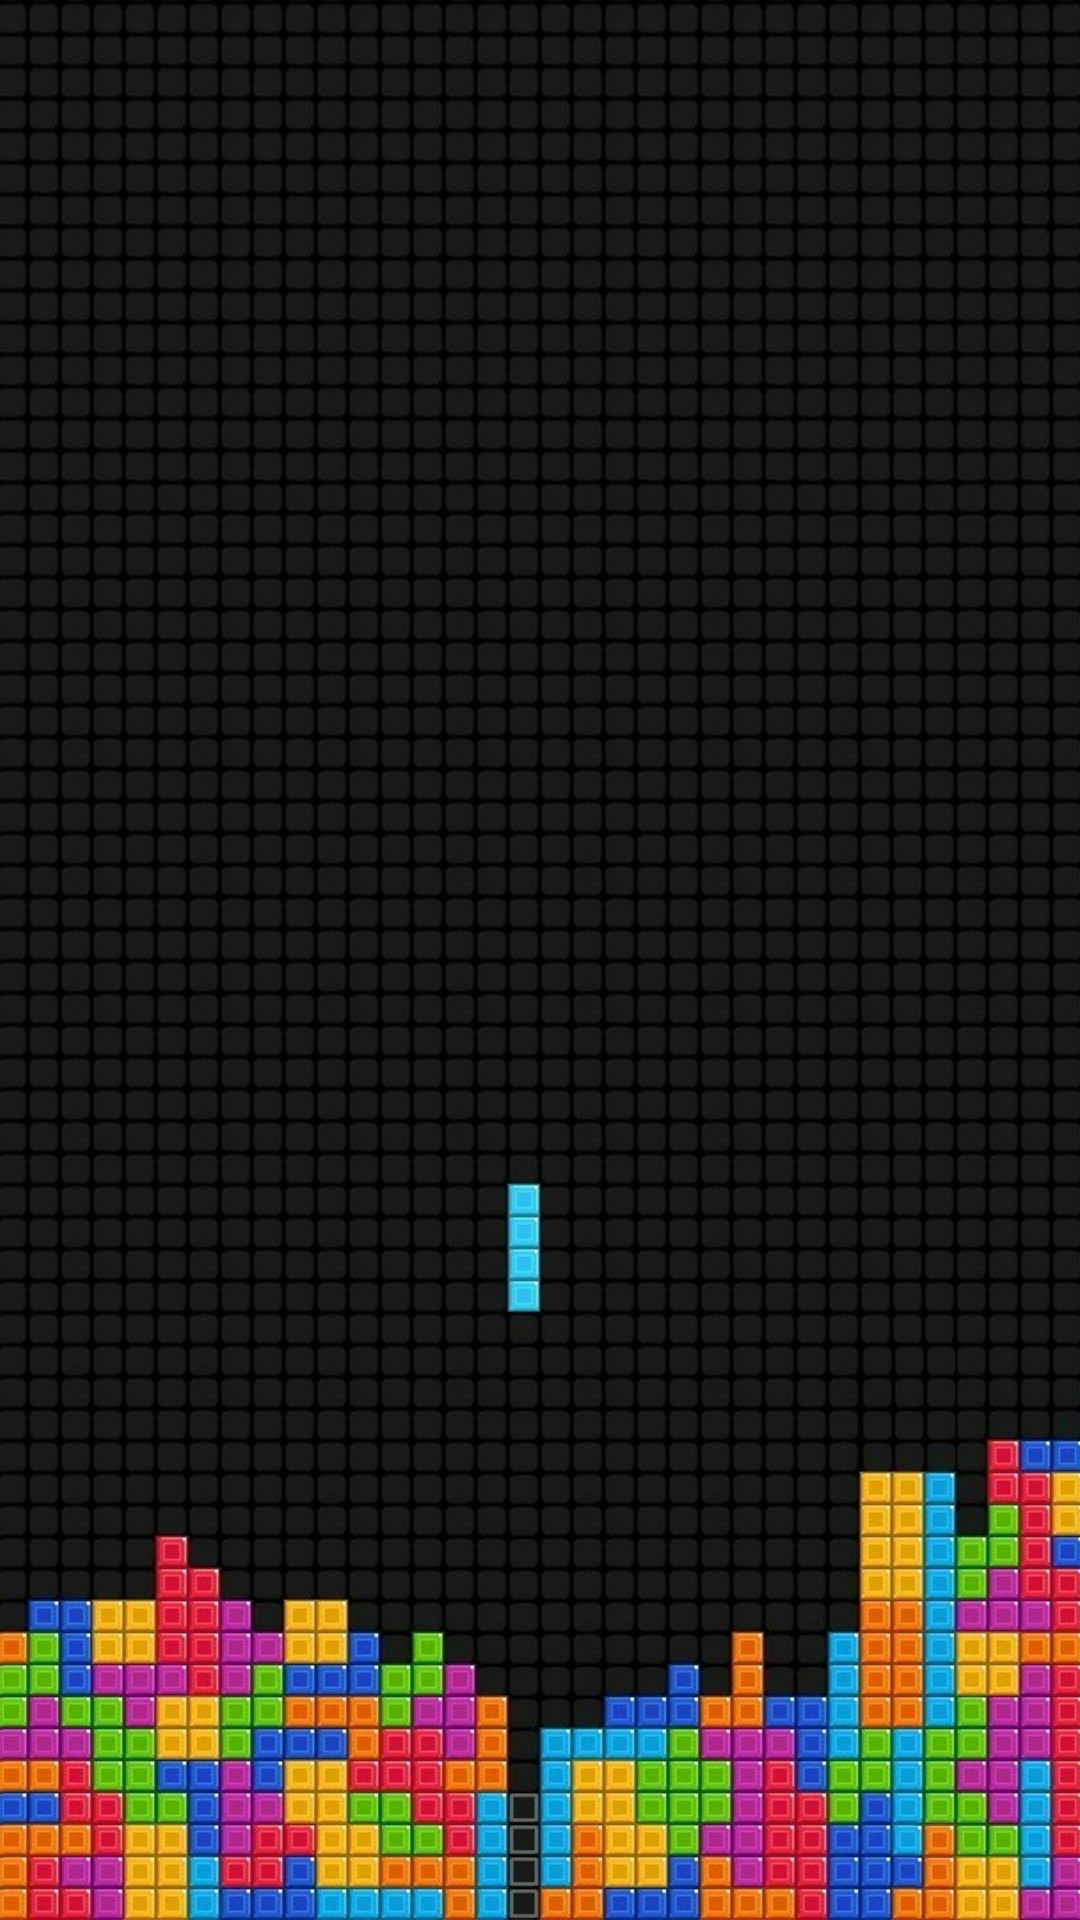 portrait Display, Video Games, Vintage, Retro Games, Tetris, Colorful,  Square, Simple Wallpapers HD / Desktop and Mobile Backgrounds